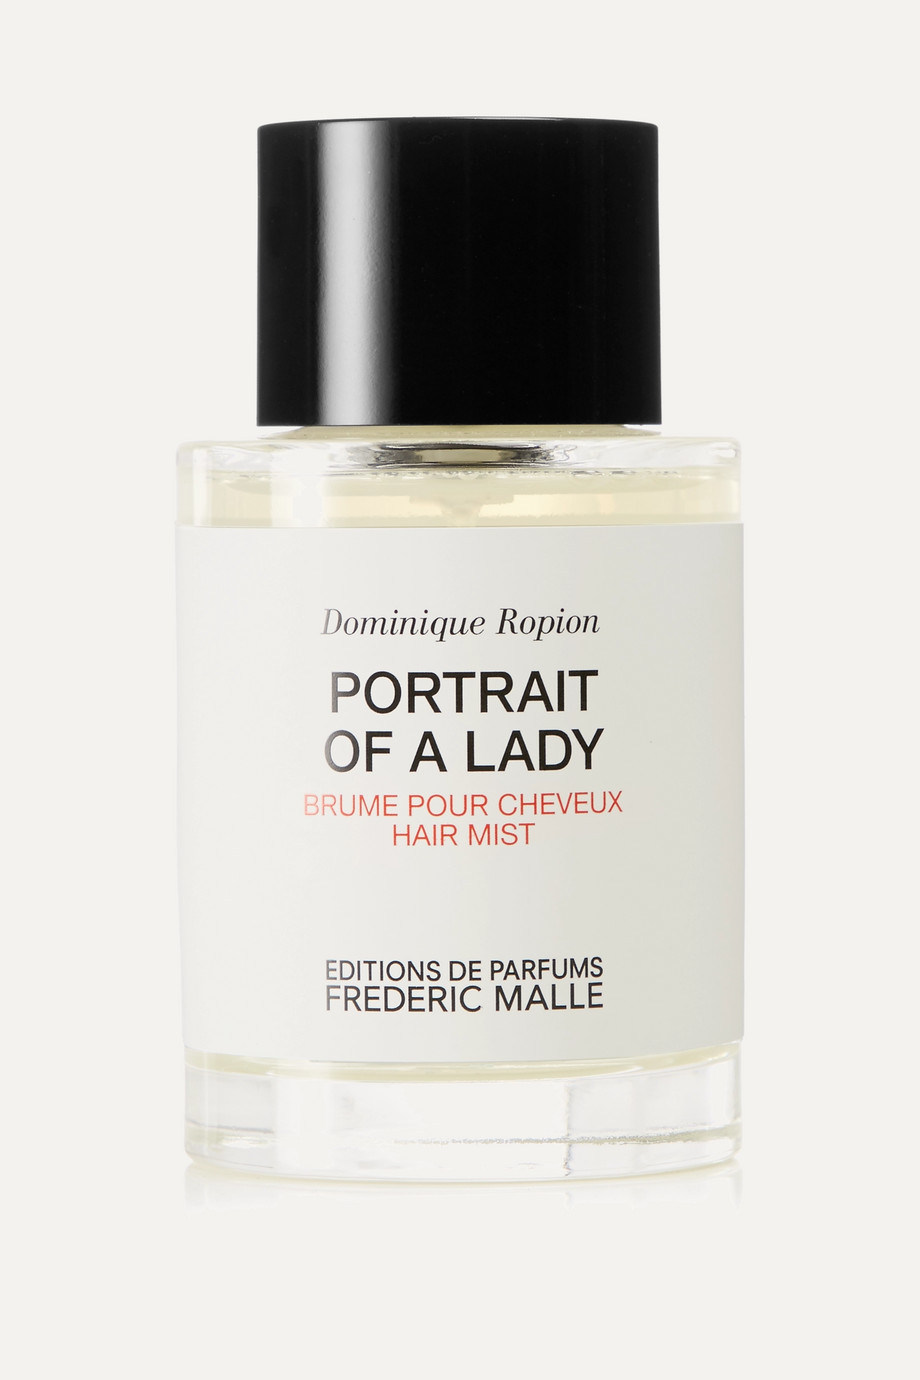 Frederic Malle Portrait of a Lady Hair Mist, 100ml